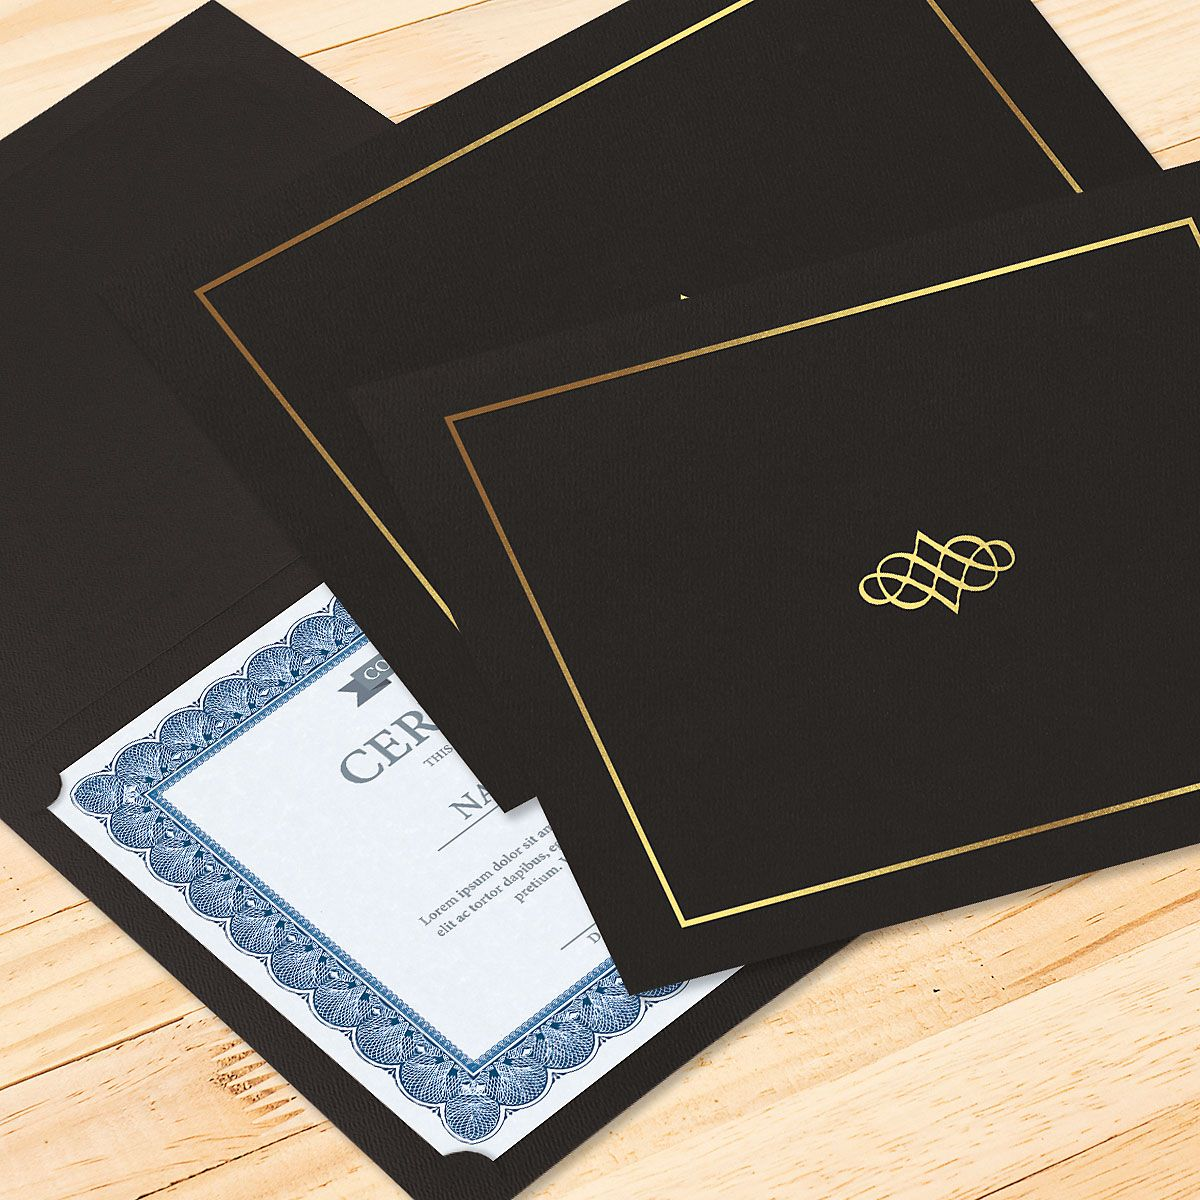 Ornate Black Certificate Folder with Gold Border/Crest - Set of 25